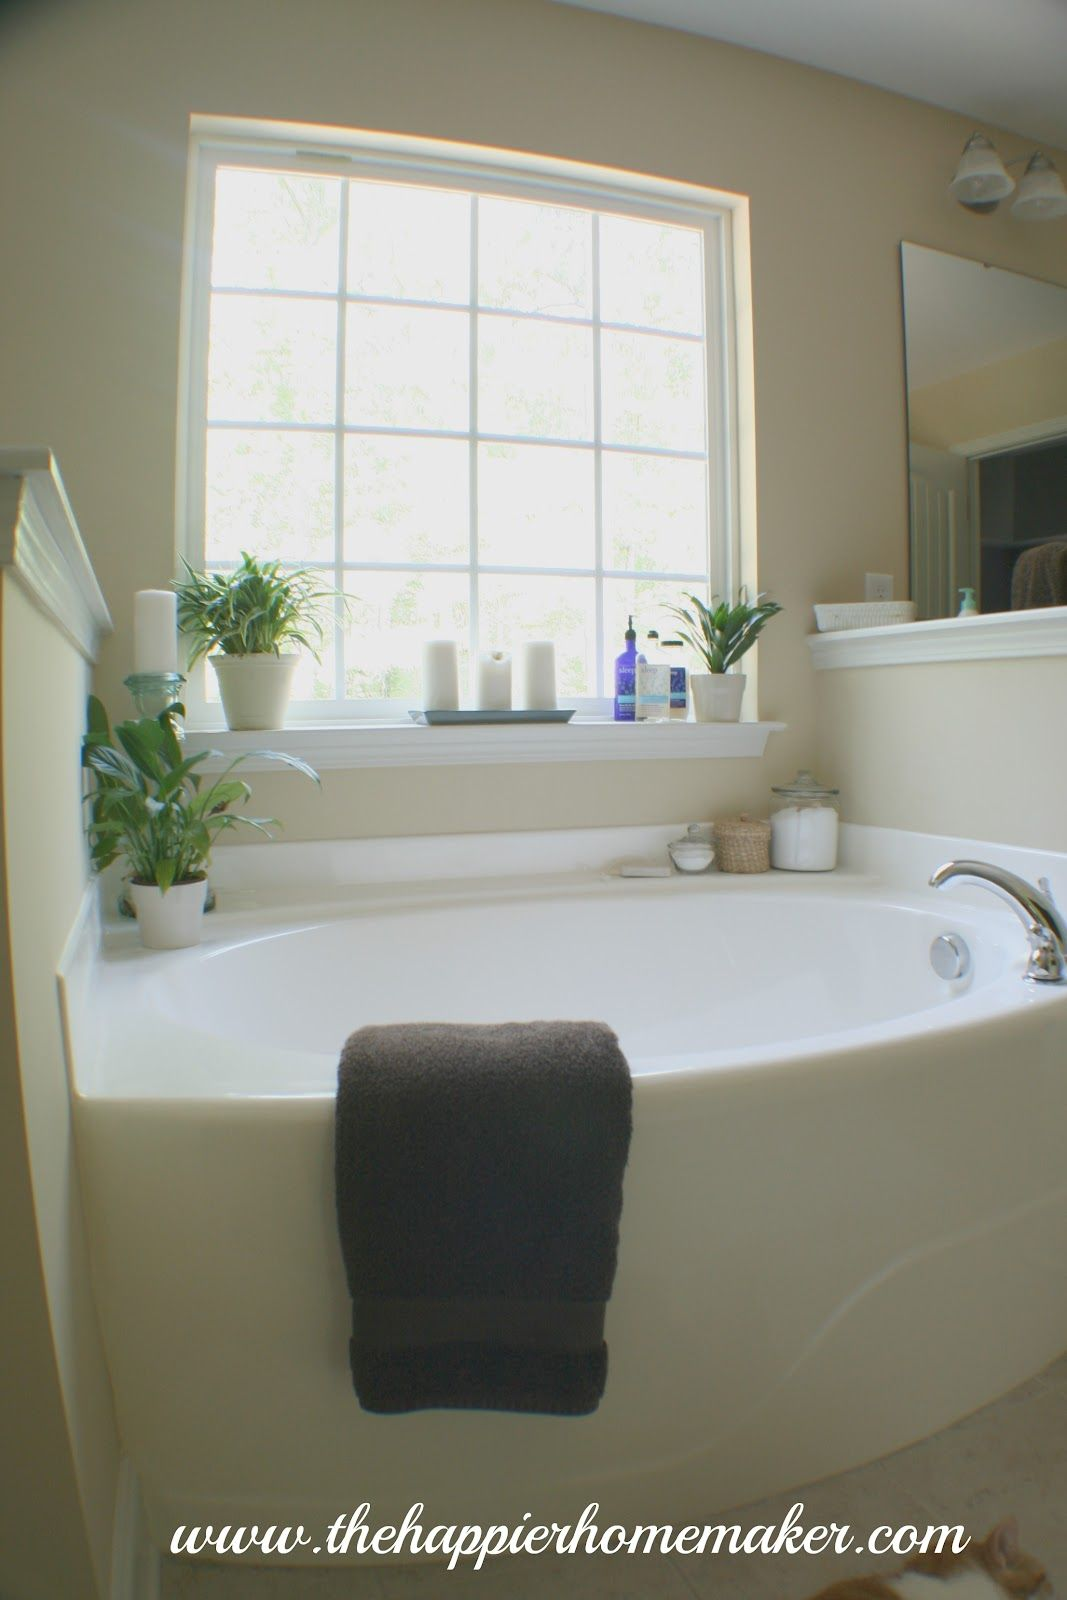 Decorating Around a Bathtub | Bathtubs, Decorating and Bath